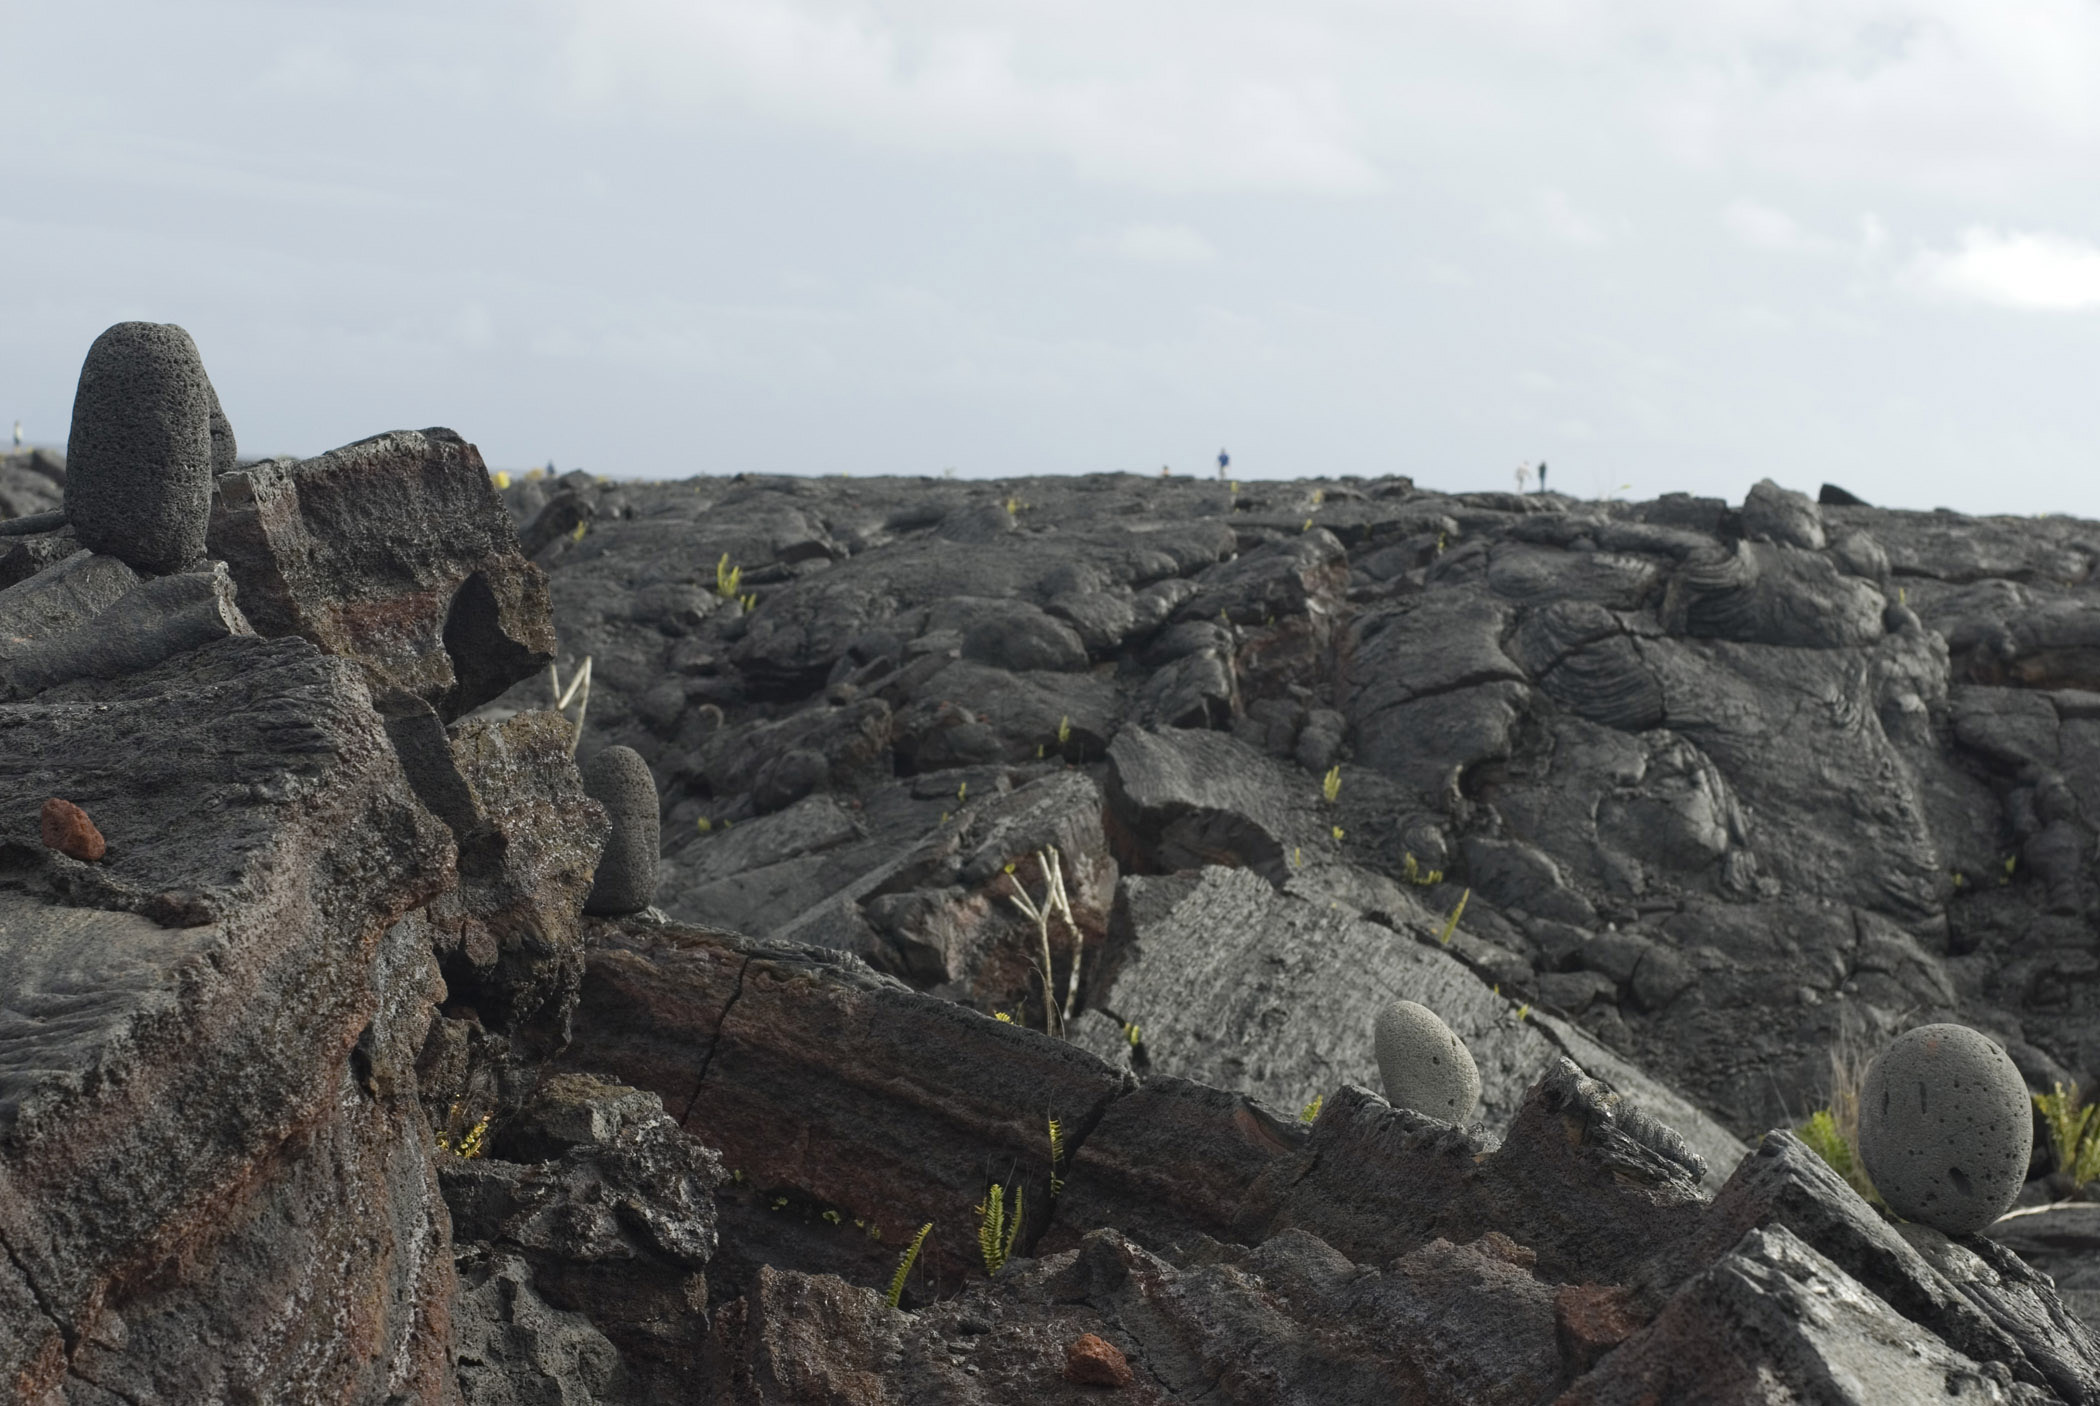 Lava fields on Ohau, Hawaii with solidified igneous volcanic rock stretching into the distance